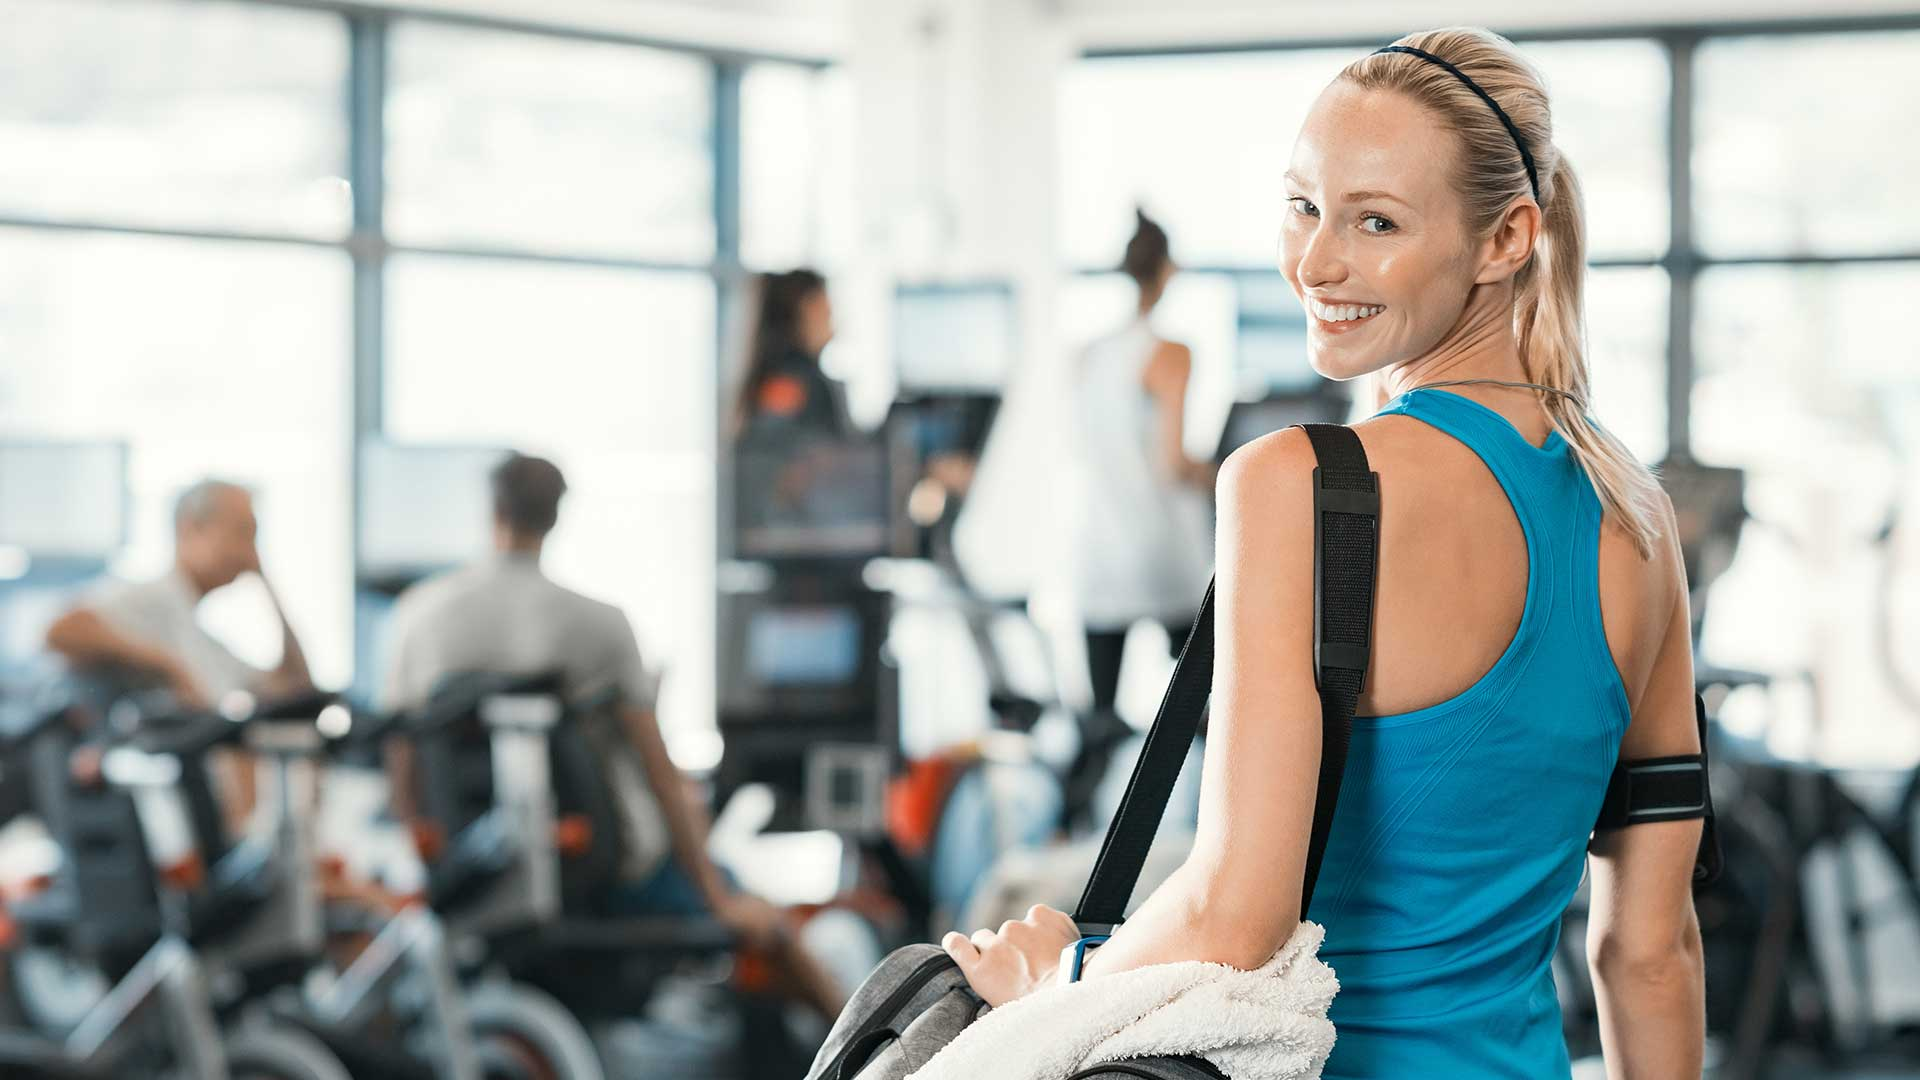 Gym to Reopen Monday 12th April